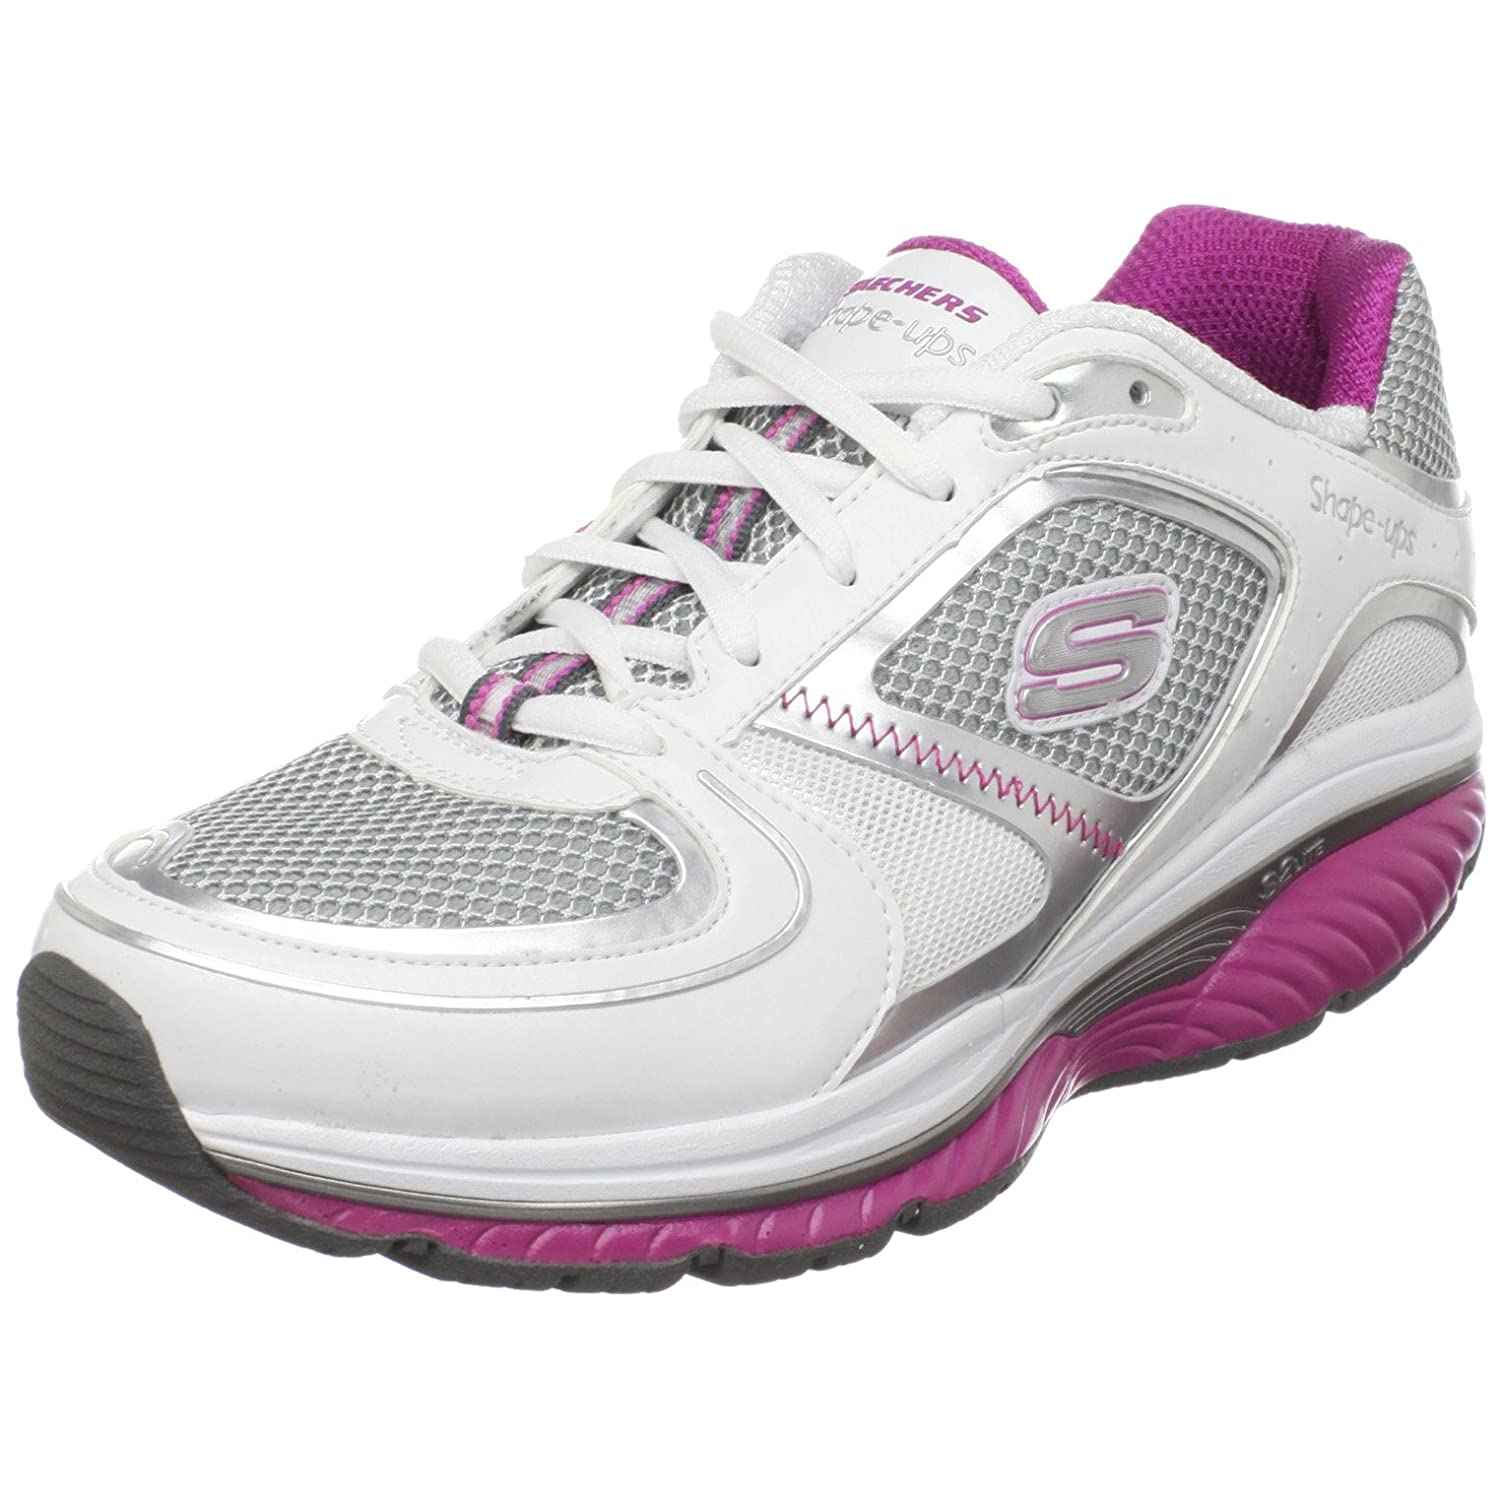 Skechers Womens Shape UPS S2 Lite 12381 Walking SNEAKERS